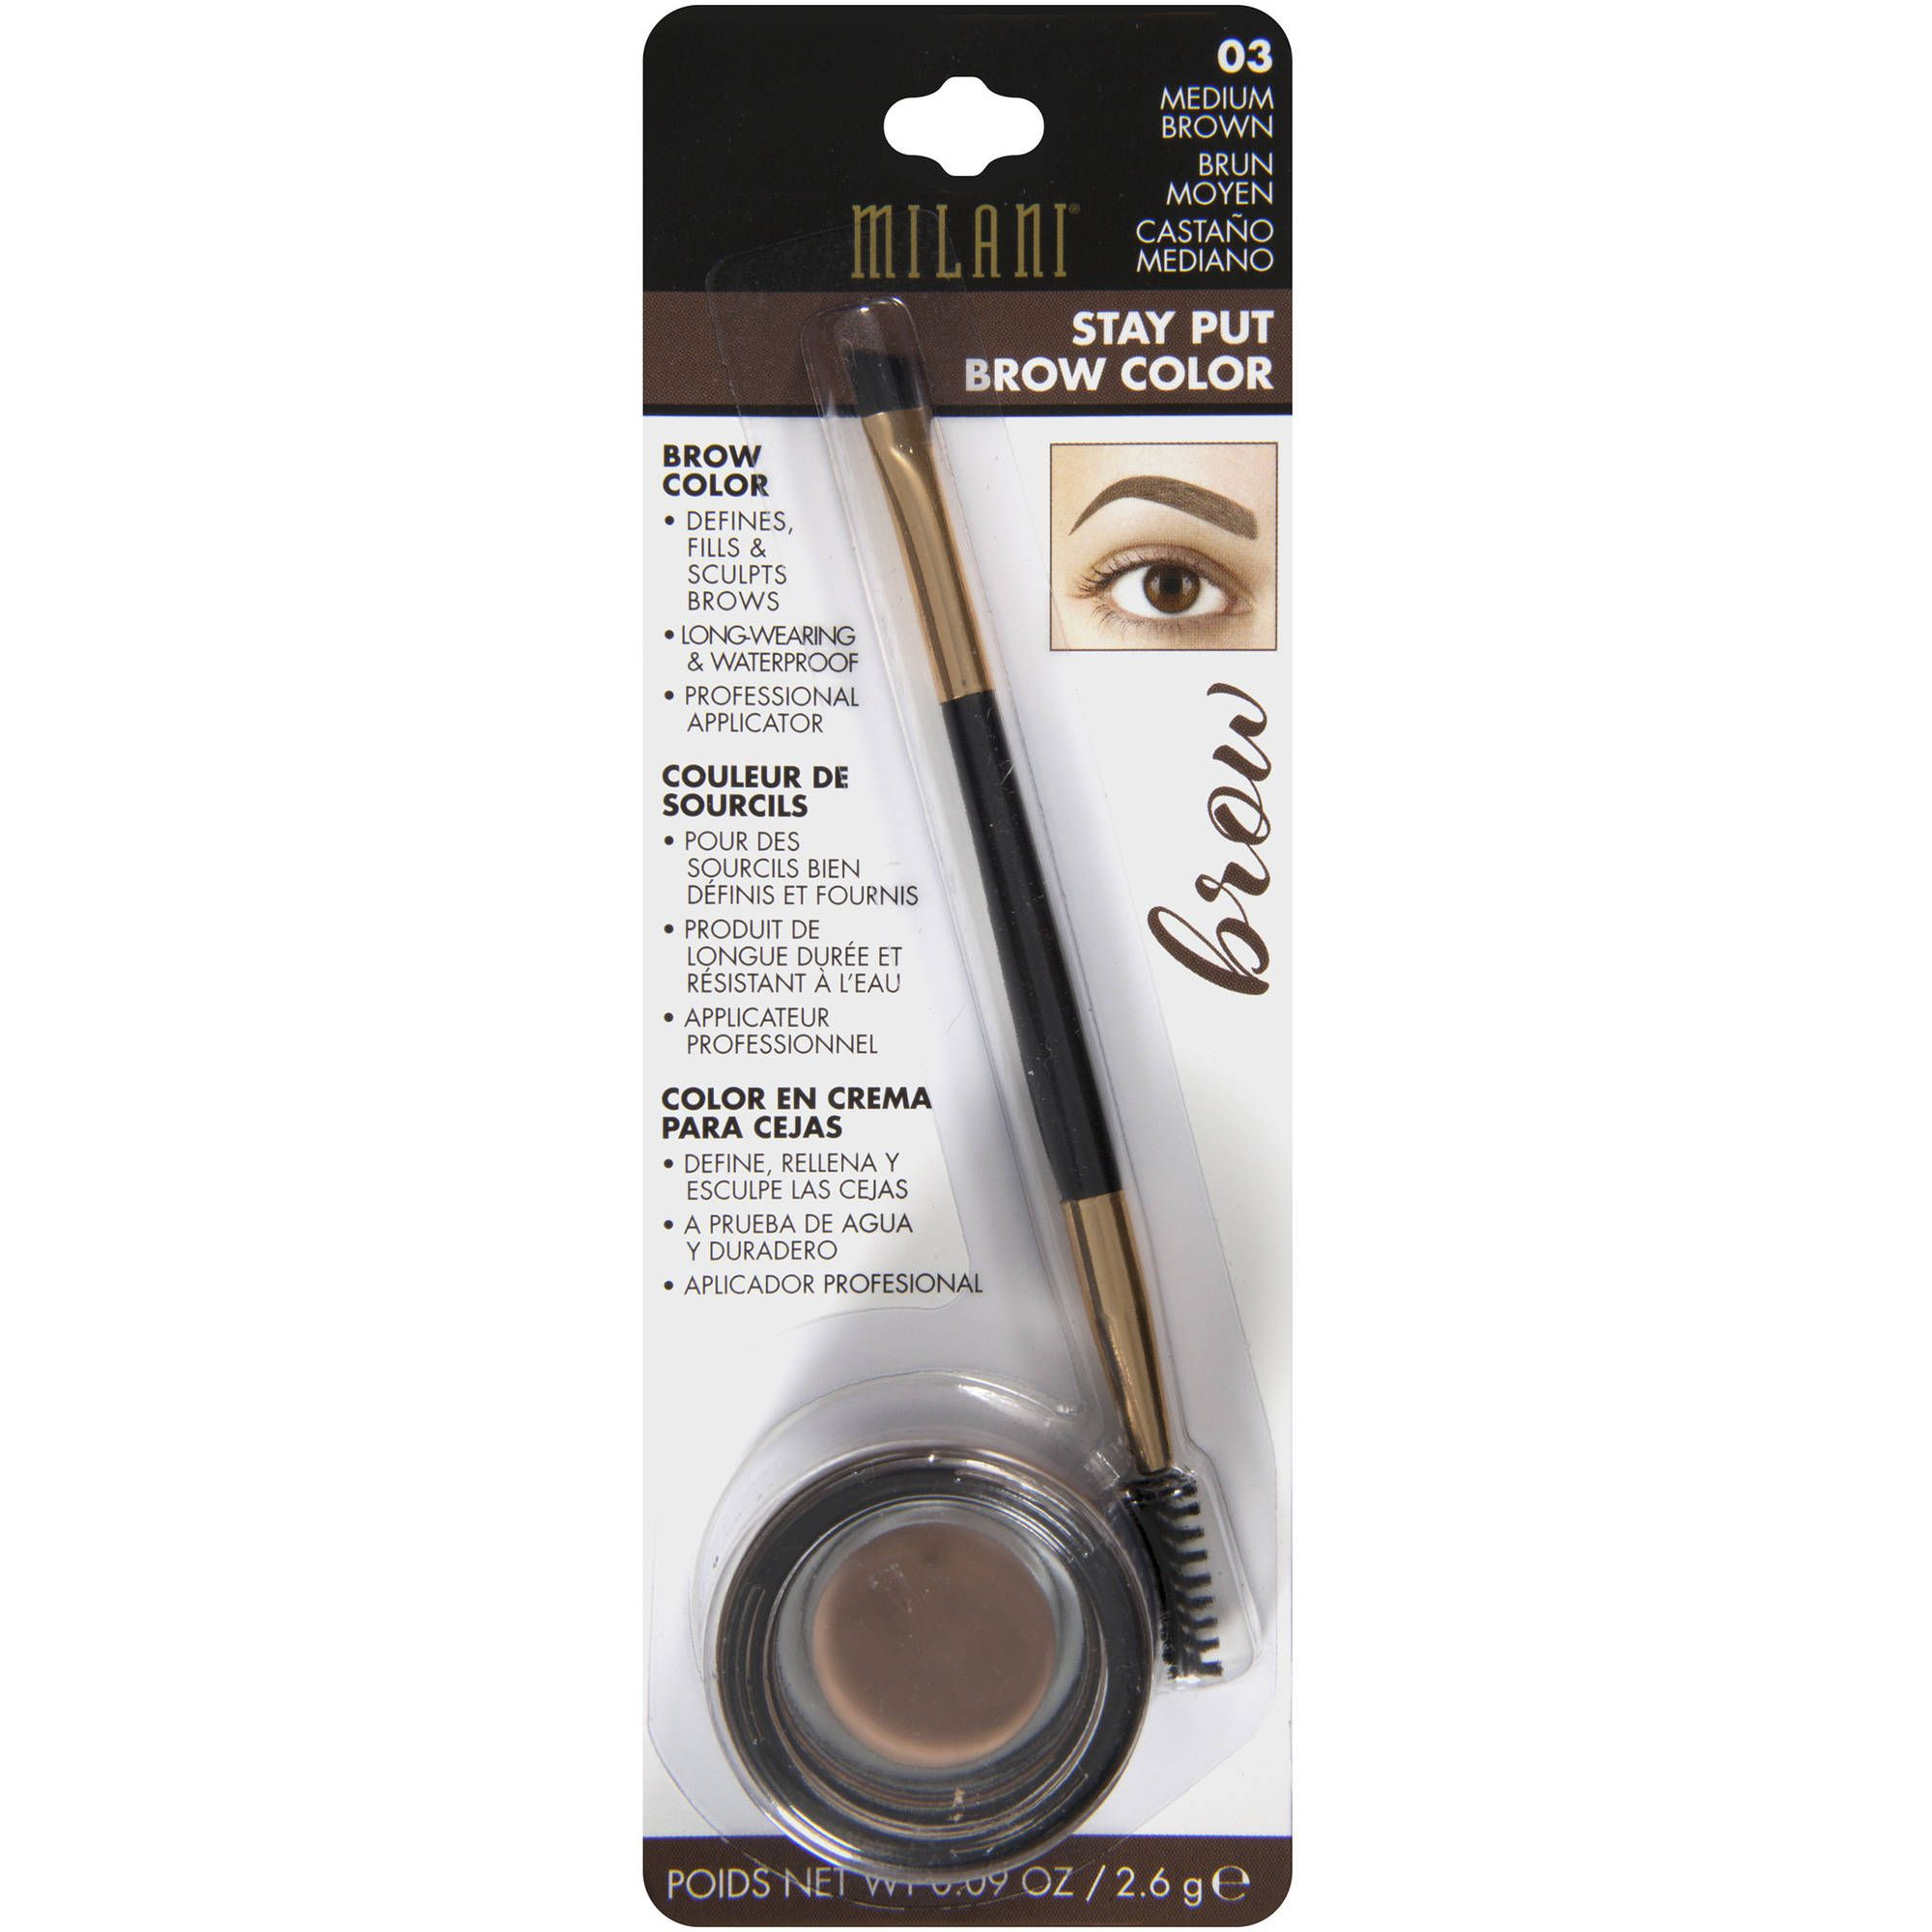 Pomada de Sobrancelha Stay Put Brow Color | Milani